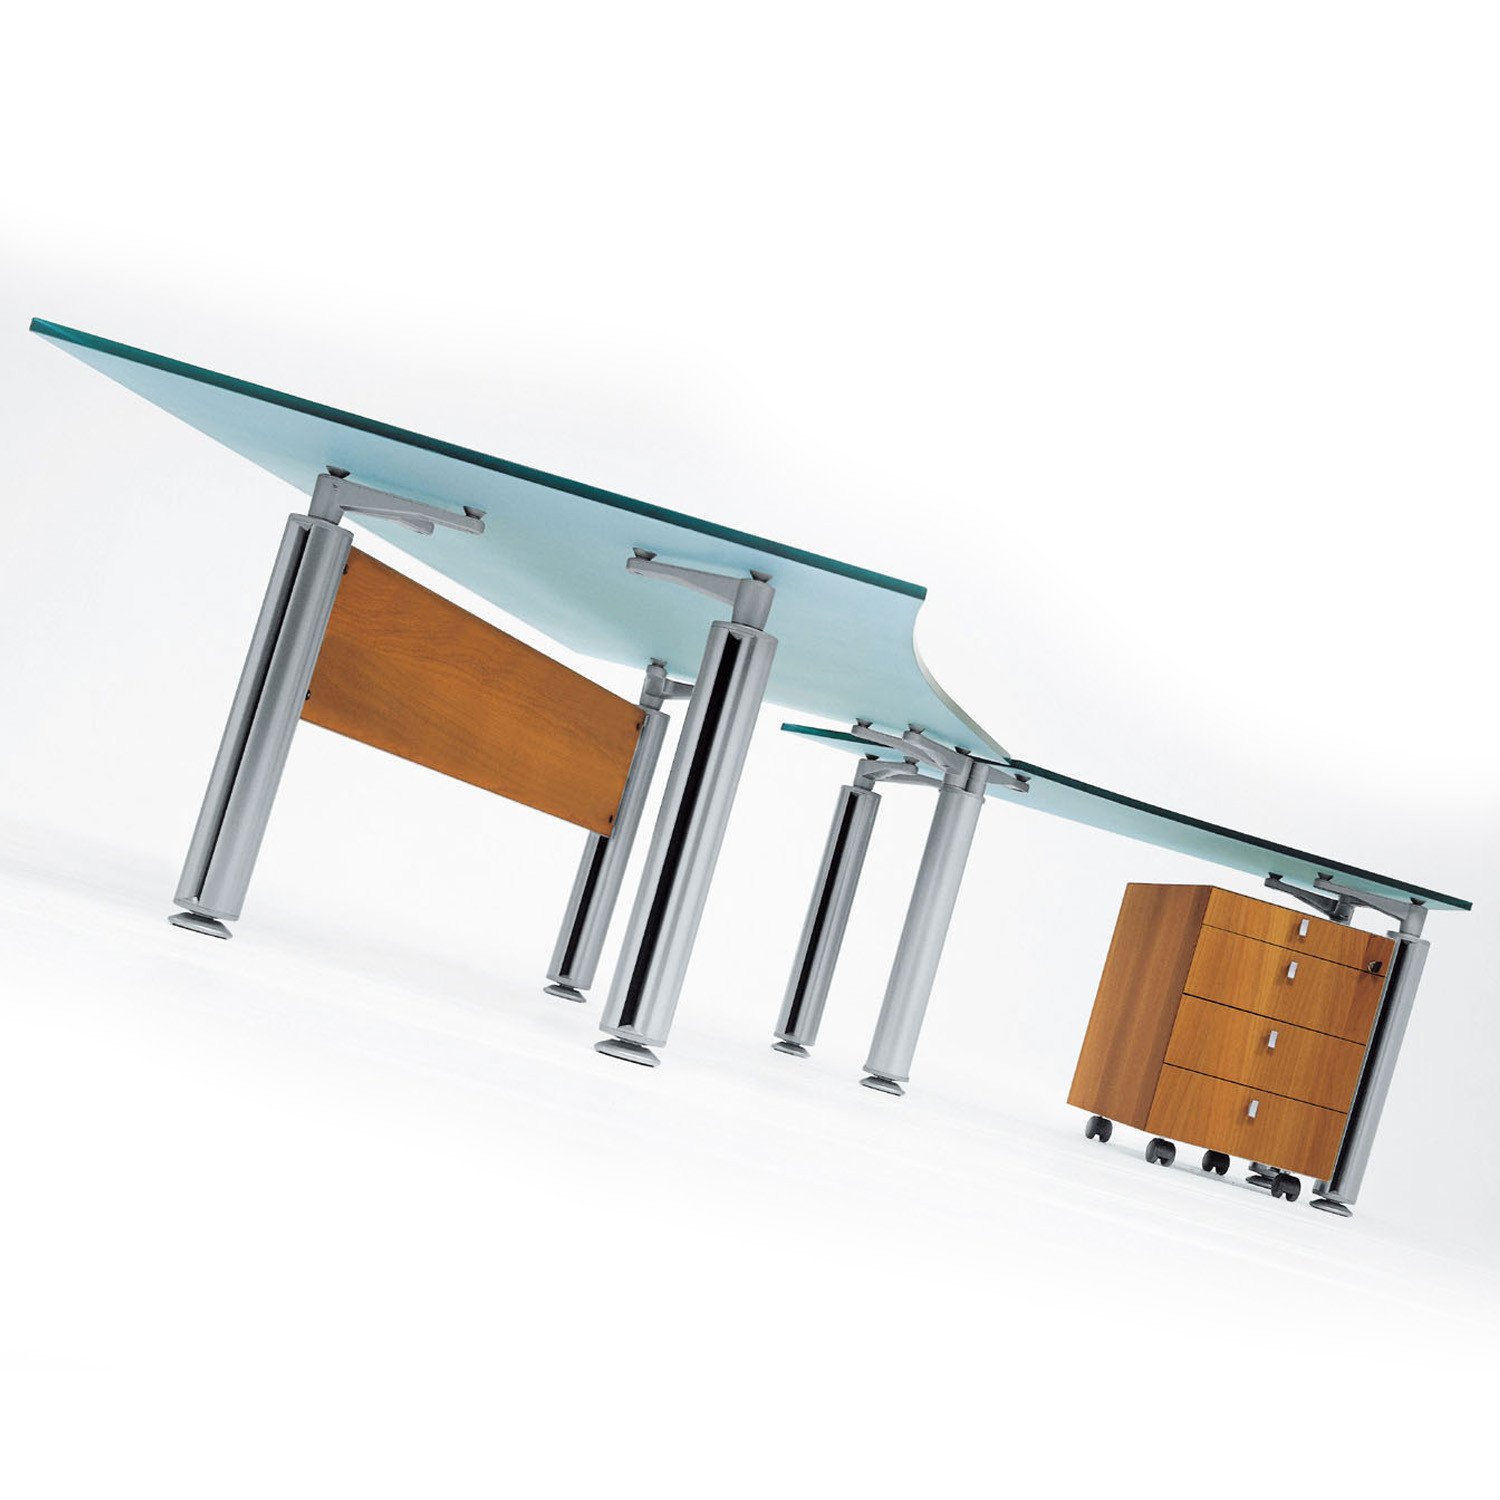 Modesty Panels and Desk Storage can be added to the Forma Kristall Executive Desk